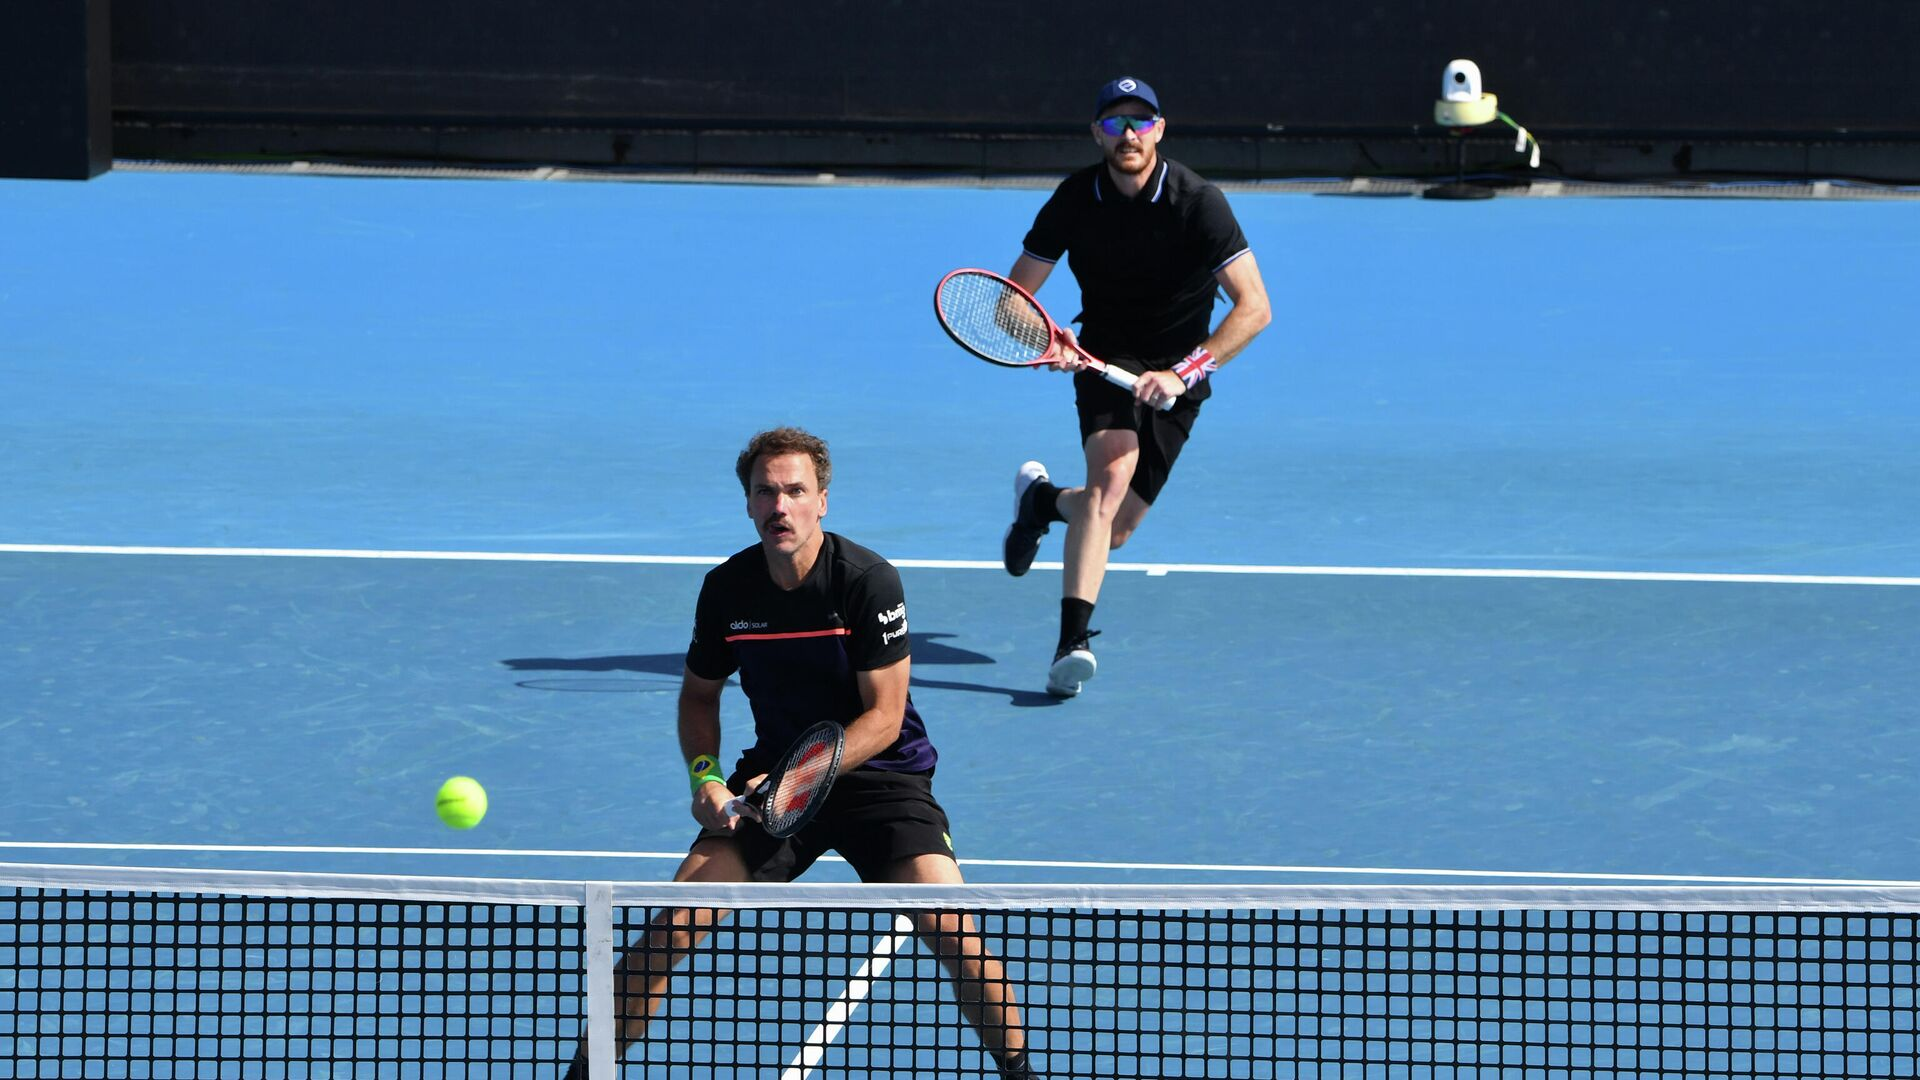 Britain's Jamie Murray (R) and partner Brazil's Bruno Soares (L) prepare to hit a return against Colombia's Juan Sebastian Cabal and Robert Farah during their Great Ocean Road Open men's doubles final match in Melbourne on February 7, 2021. (Photo by Paul CROCK / AFP) / -- IMAGE RESTRICTED TO EDITORIAL USE - STRICTLY NO COMMERCIAL USE -- - РИА Новости, 1920, 07.02.2021